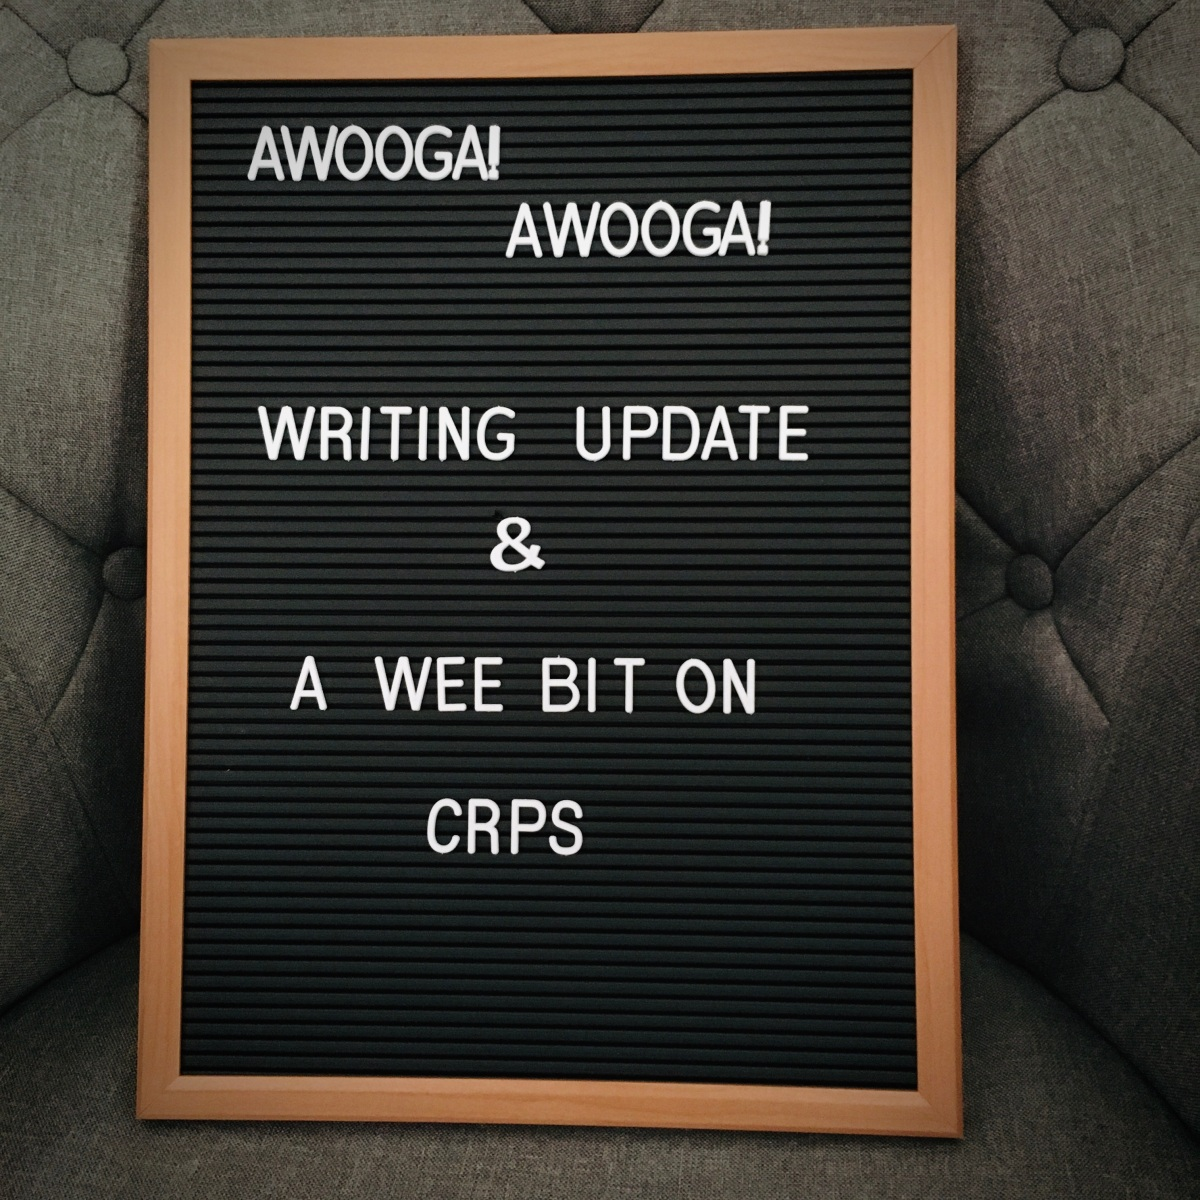 Writing Update and A Wee Bit onCRPS